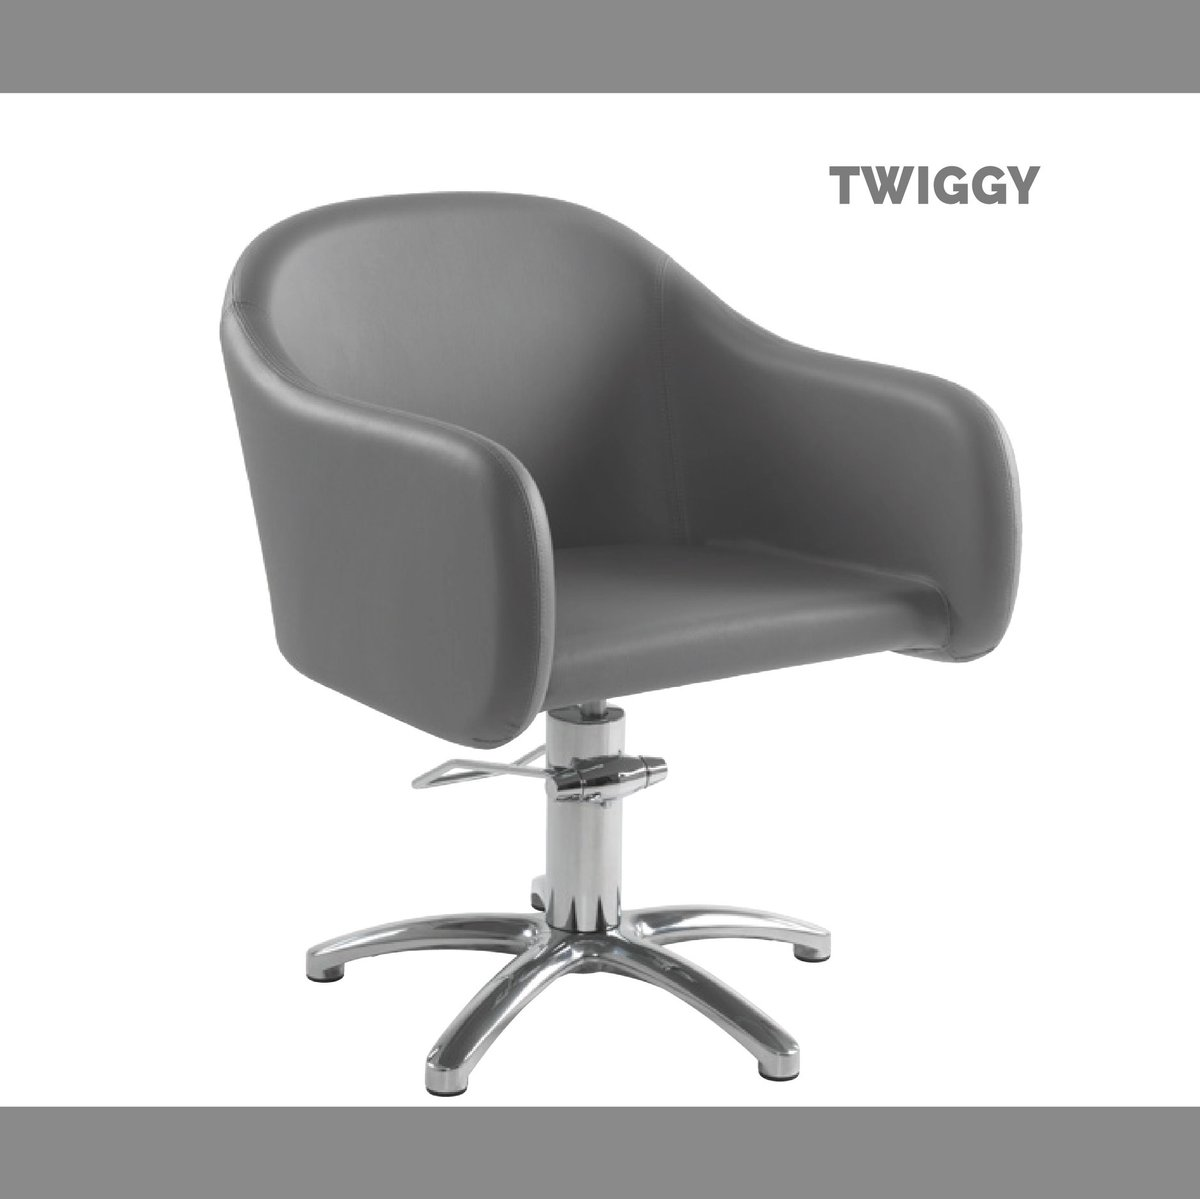 Fresh and iconic, a unique look and a strong personality. #Twiggy is #Maletti's elegant styling chair.  Discover the PROMO > http://www.maletti.it/it/promo  #Malettigroup #madam #professionalfurnishing #hairsalon pic.twitter.com/VhKw17QfrQ